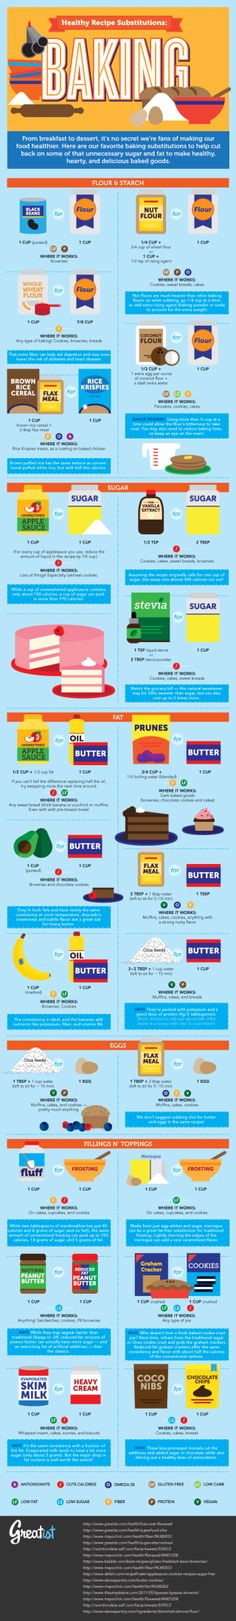 Healthy, Tasty Baking Substitutions